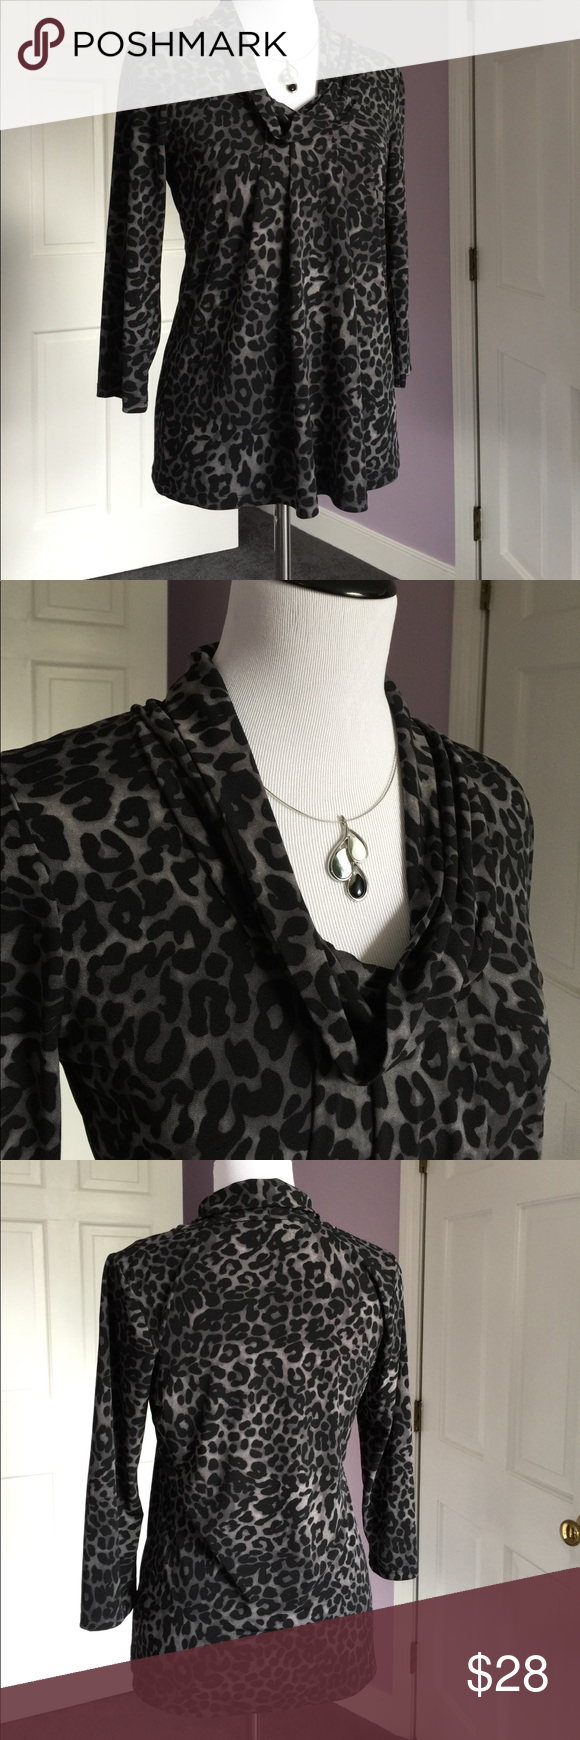 Lovely Chaus Knit Animal Print Top Animal print with drapey cowl-like collar, pleated at chest, skims your curves.  3/4 sleeves. Black and gray, size small. Fabric content in photos. Very good condition. Thanks for looking! Chaus Tops Blouses